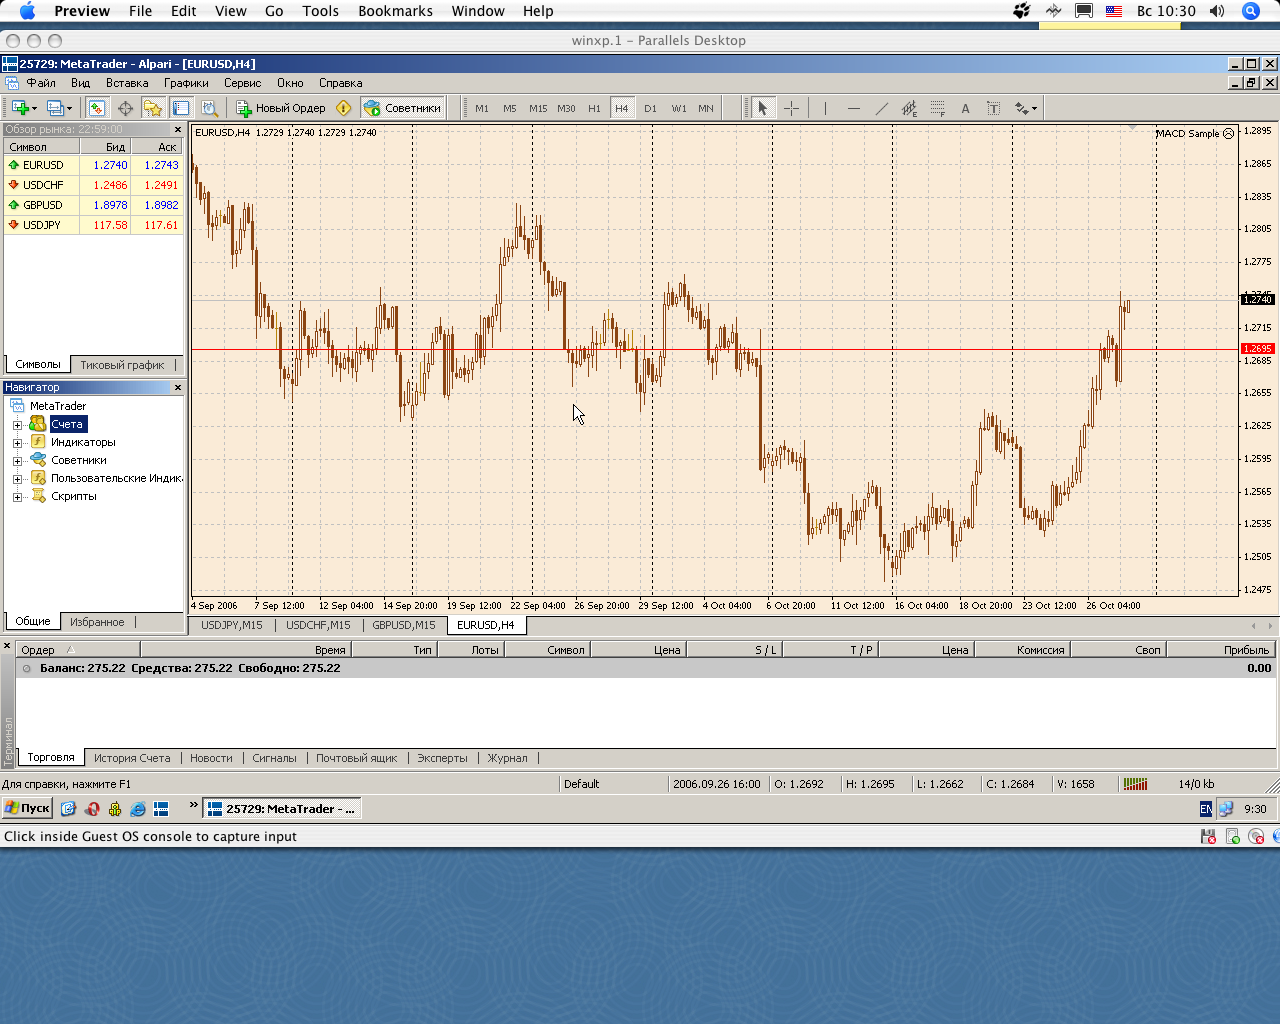 Forex trading demo account for mac